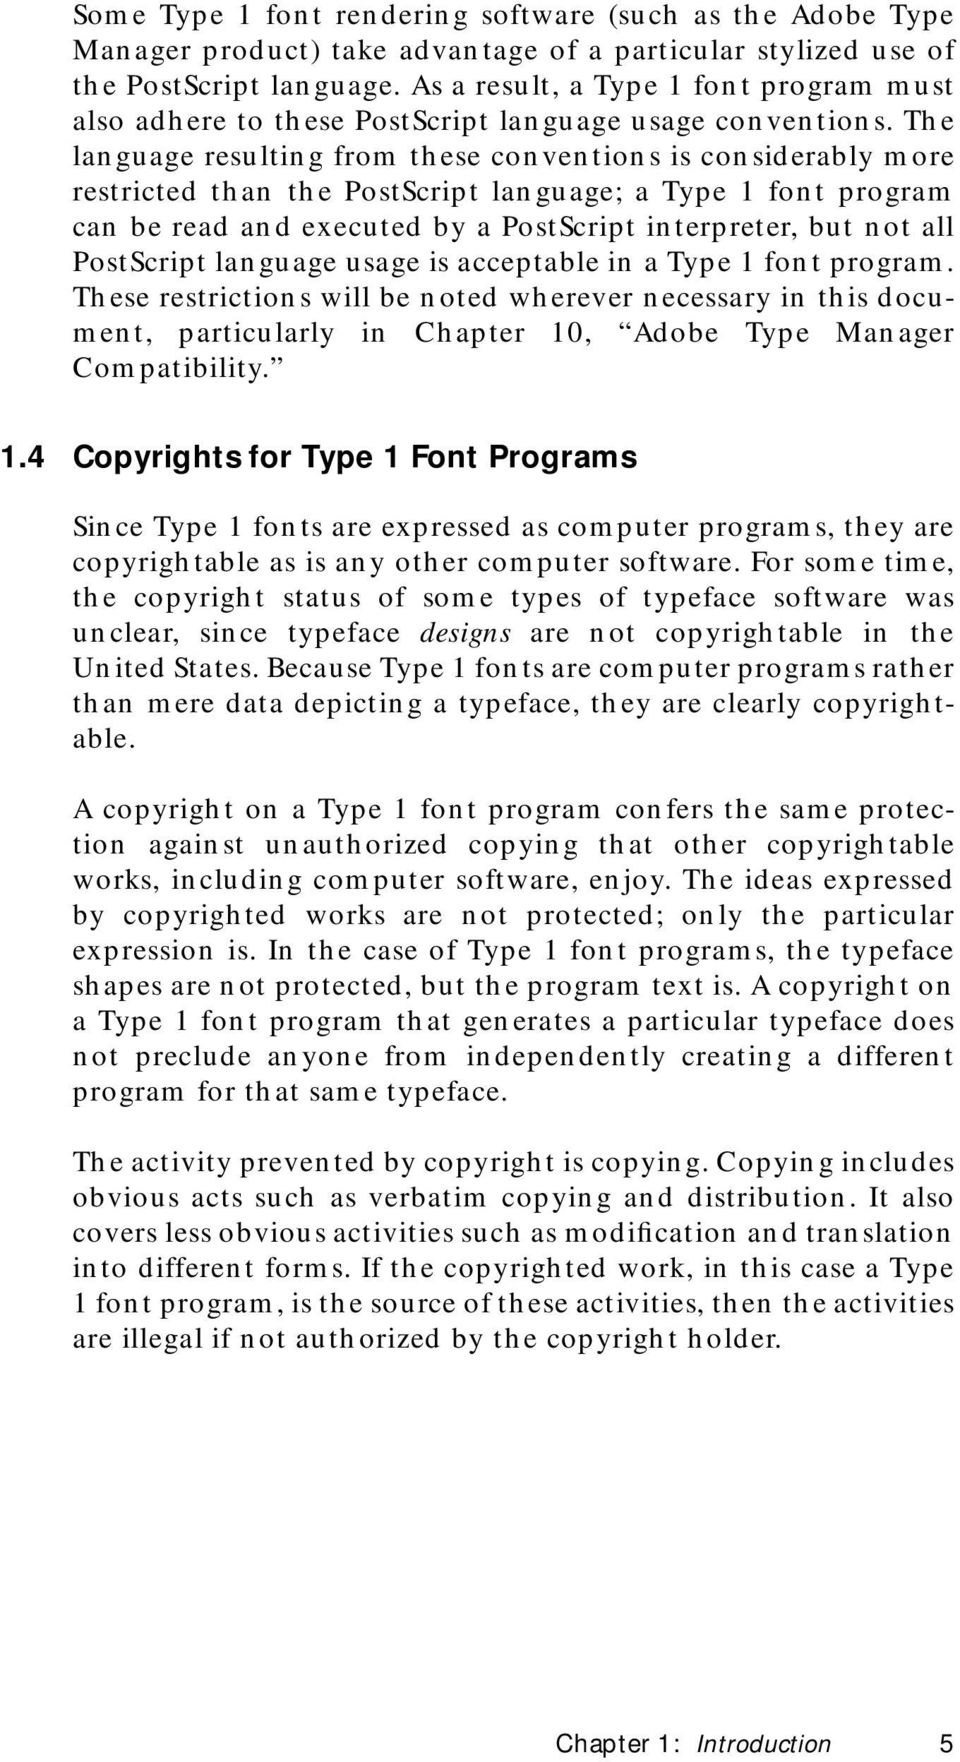 The language resulting from these conventions is considerably more restricted than the PostScript language; a Type 1 font program can be read and executed by a PostScript interpreter, but not all